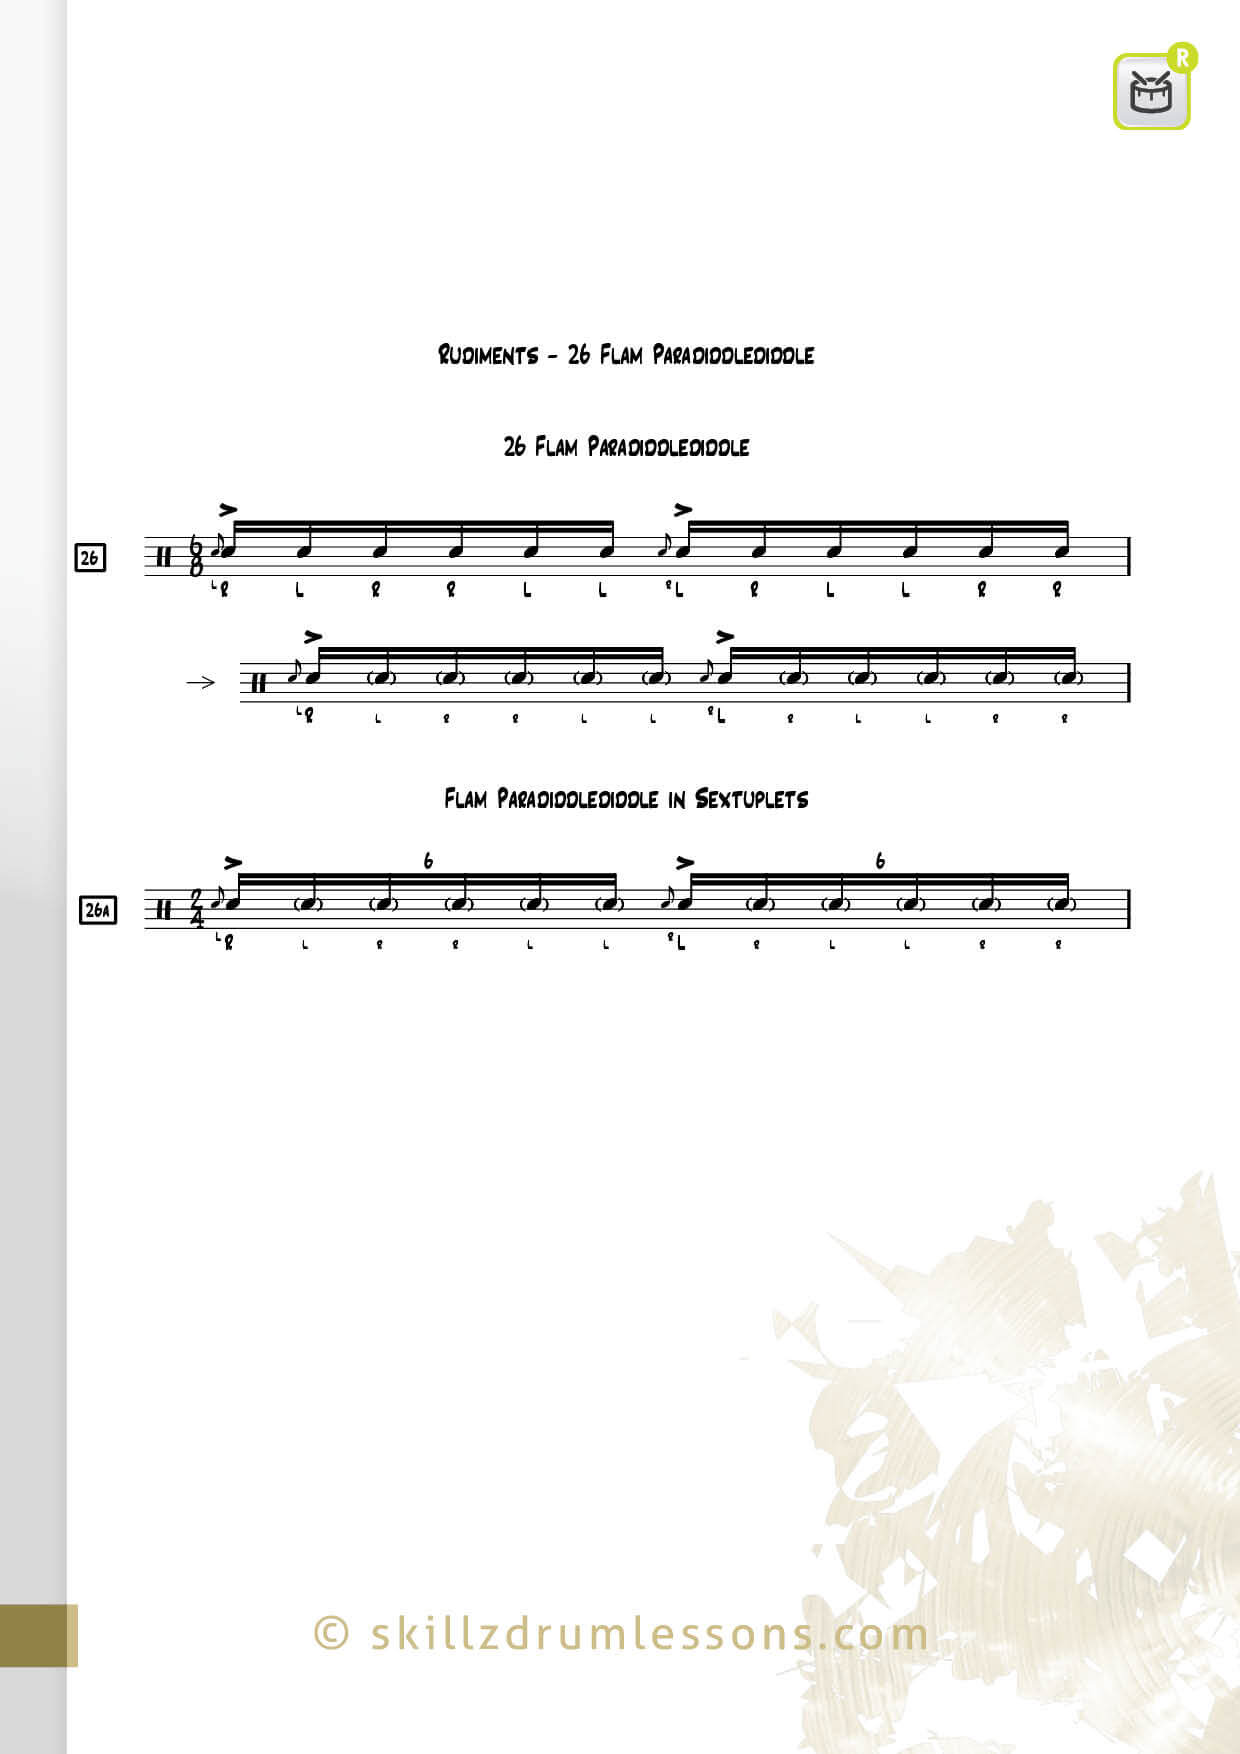 This is an image of the Official 40 Essential P.A.S. Rudiments #26 The Flam Paradiddlediddle by Skillz Drum Lessons